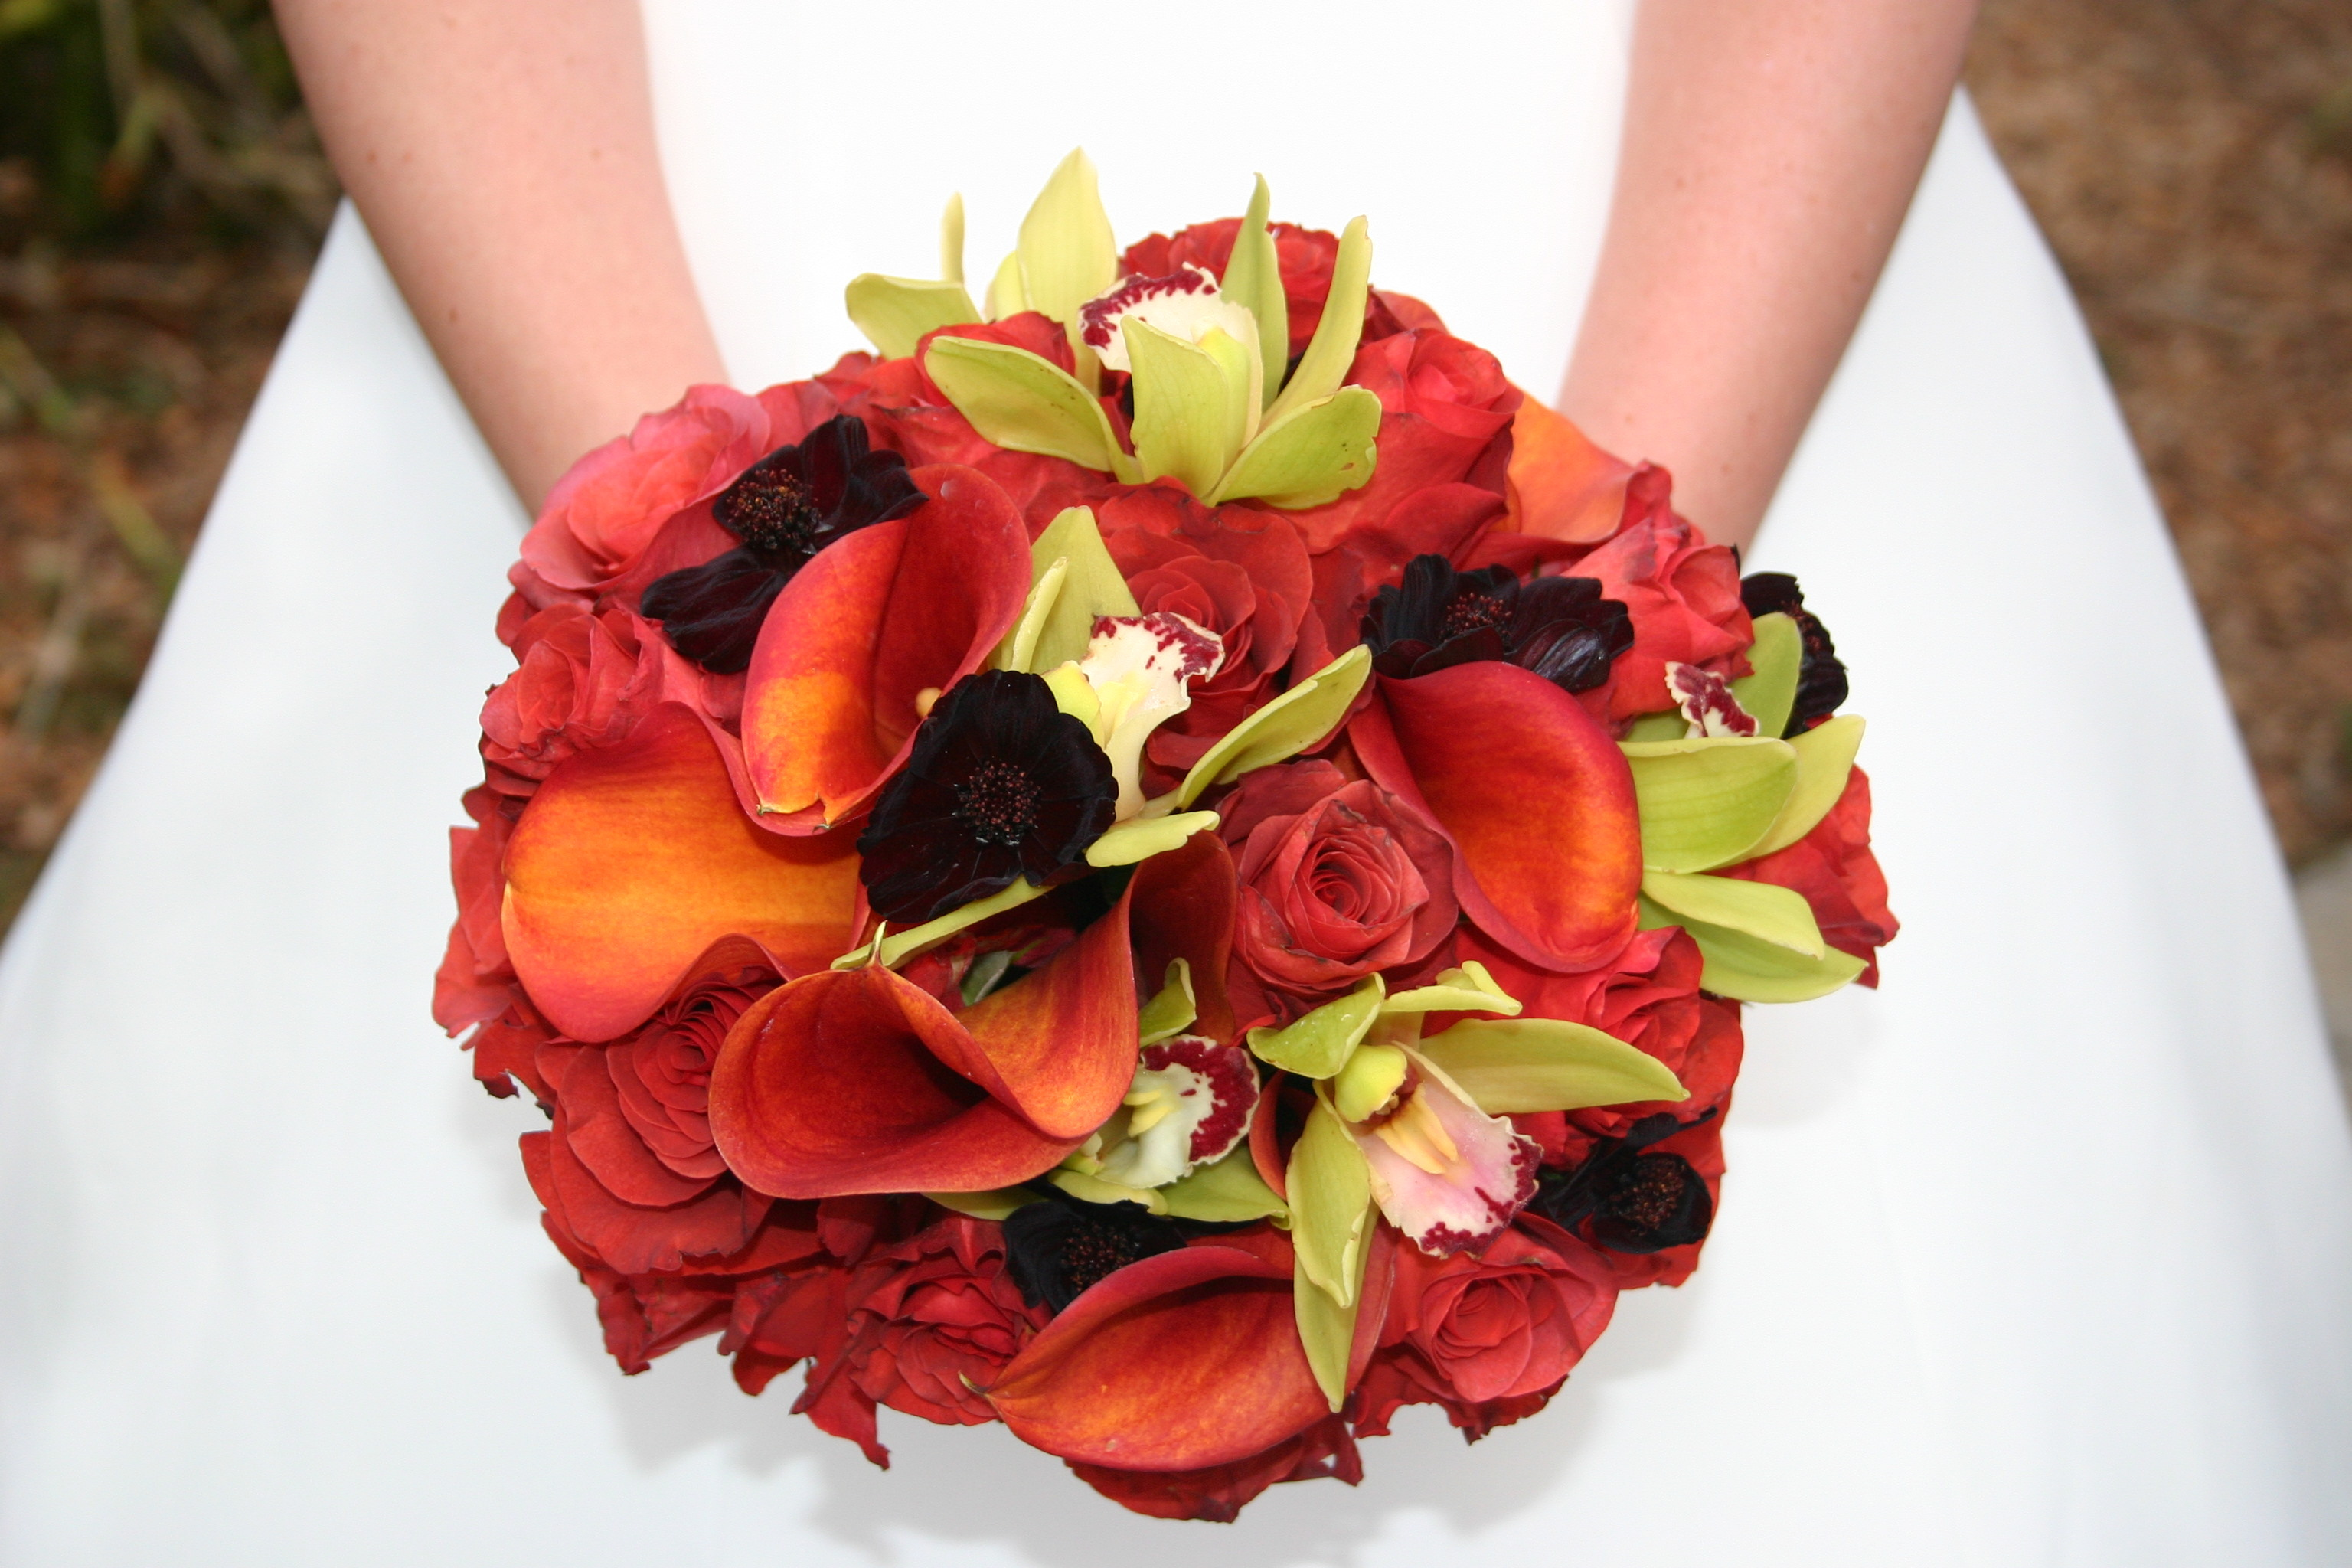 Flowers & Decor, Decor, orange, green, Bride Bouquets, Fall, Flowers, Fall Wedding Flowers & Decor, Roses, Bouquet, Orchid, Floral, Orchids, Colors, Rose, Apples, Hydrangea, Lily, La partie events, Burnt, Cala, Apple, Florist, Pomegranate, Calalily, Calalilies, Terracotta